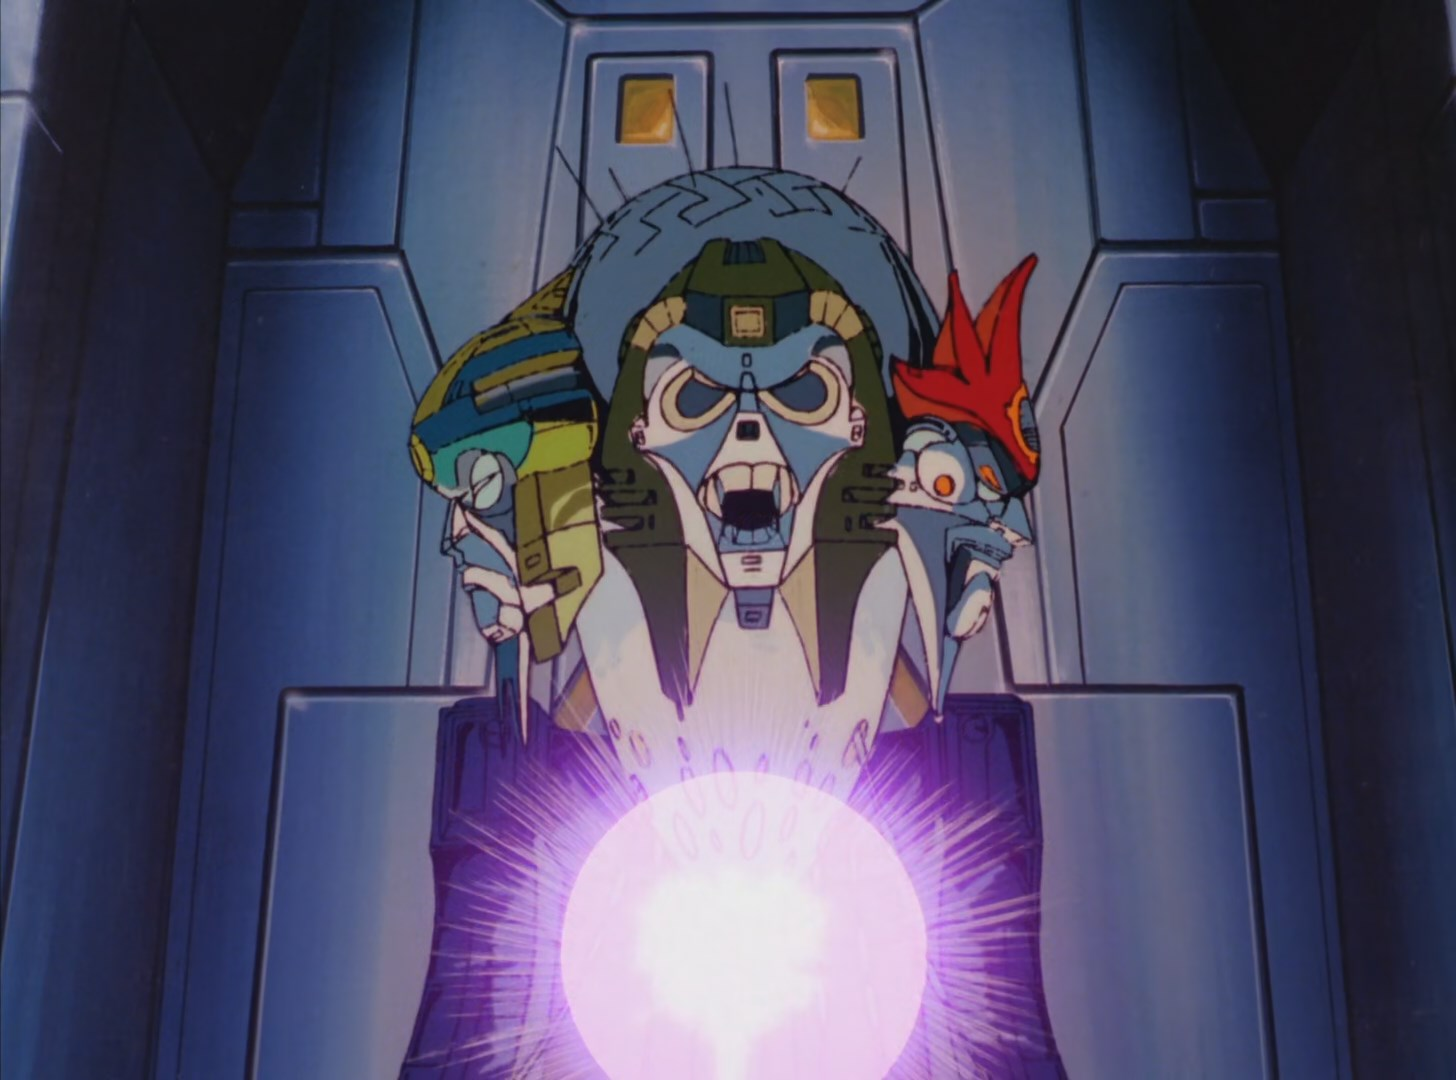 The Quintessons. Malevolent creators of the Transformers.